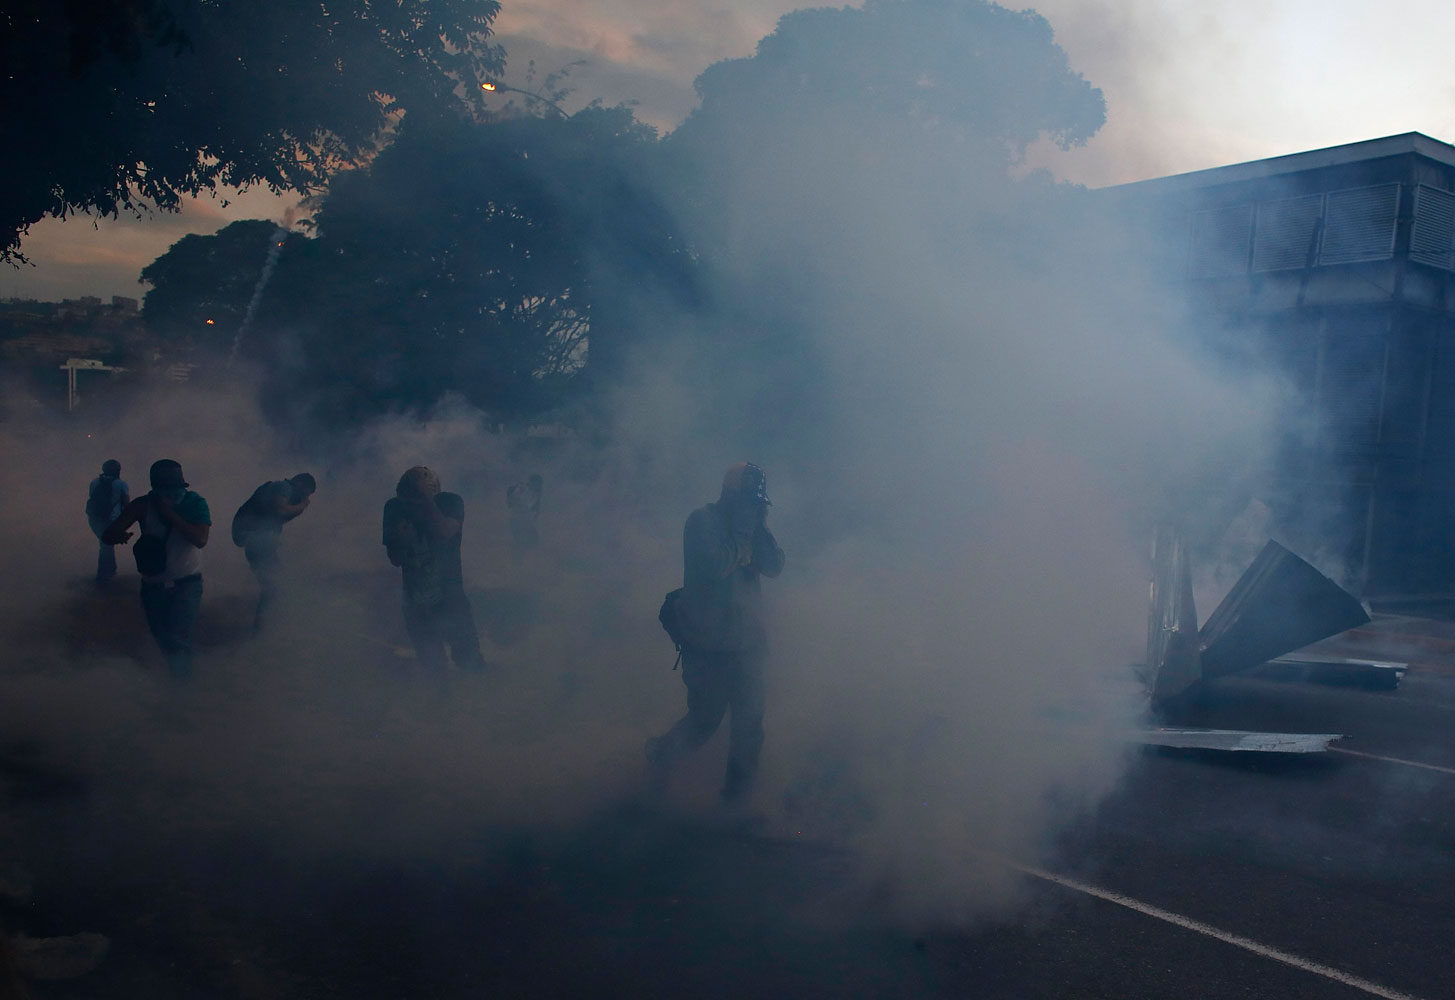 Anti-government protesters run away from tear gas during clashes with the national guard at Altamira square in Caracas, Feb. 28, 2014.